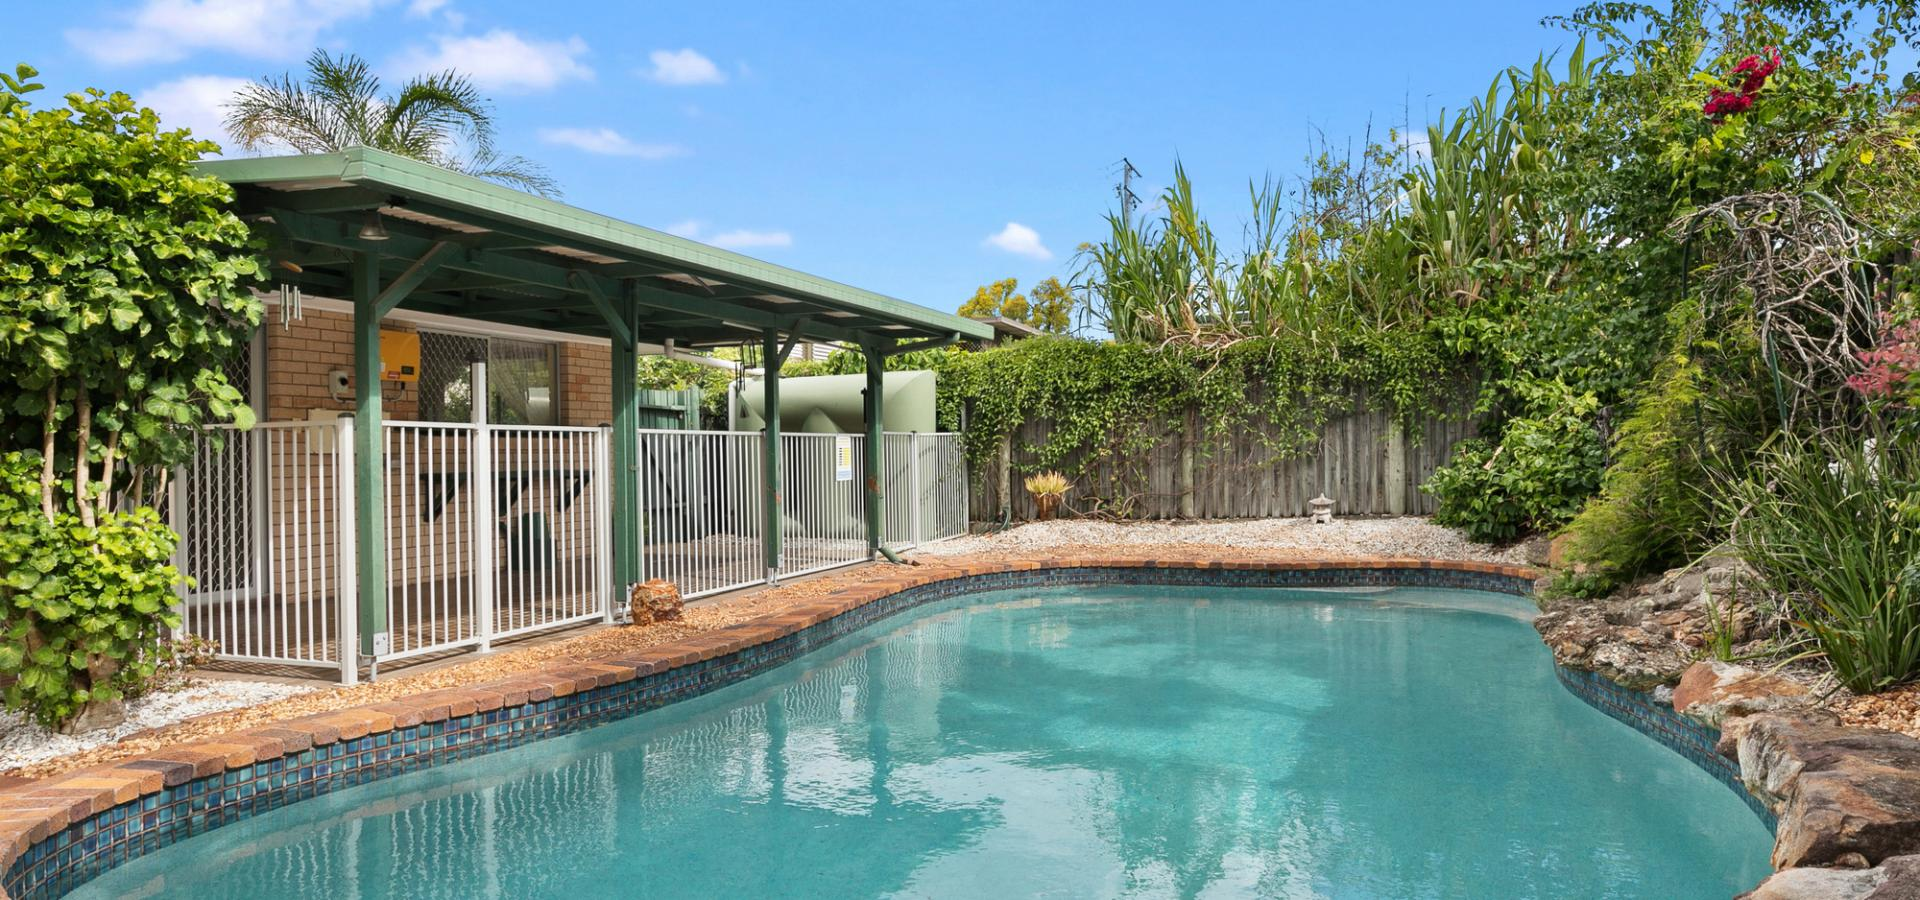 Lowset home with tropical inground pool